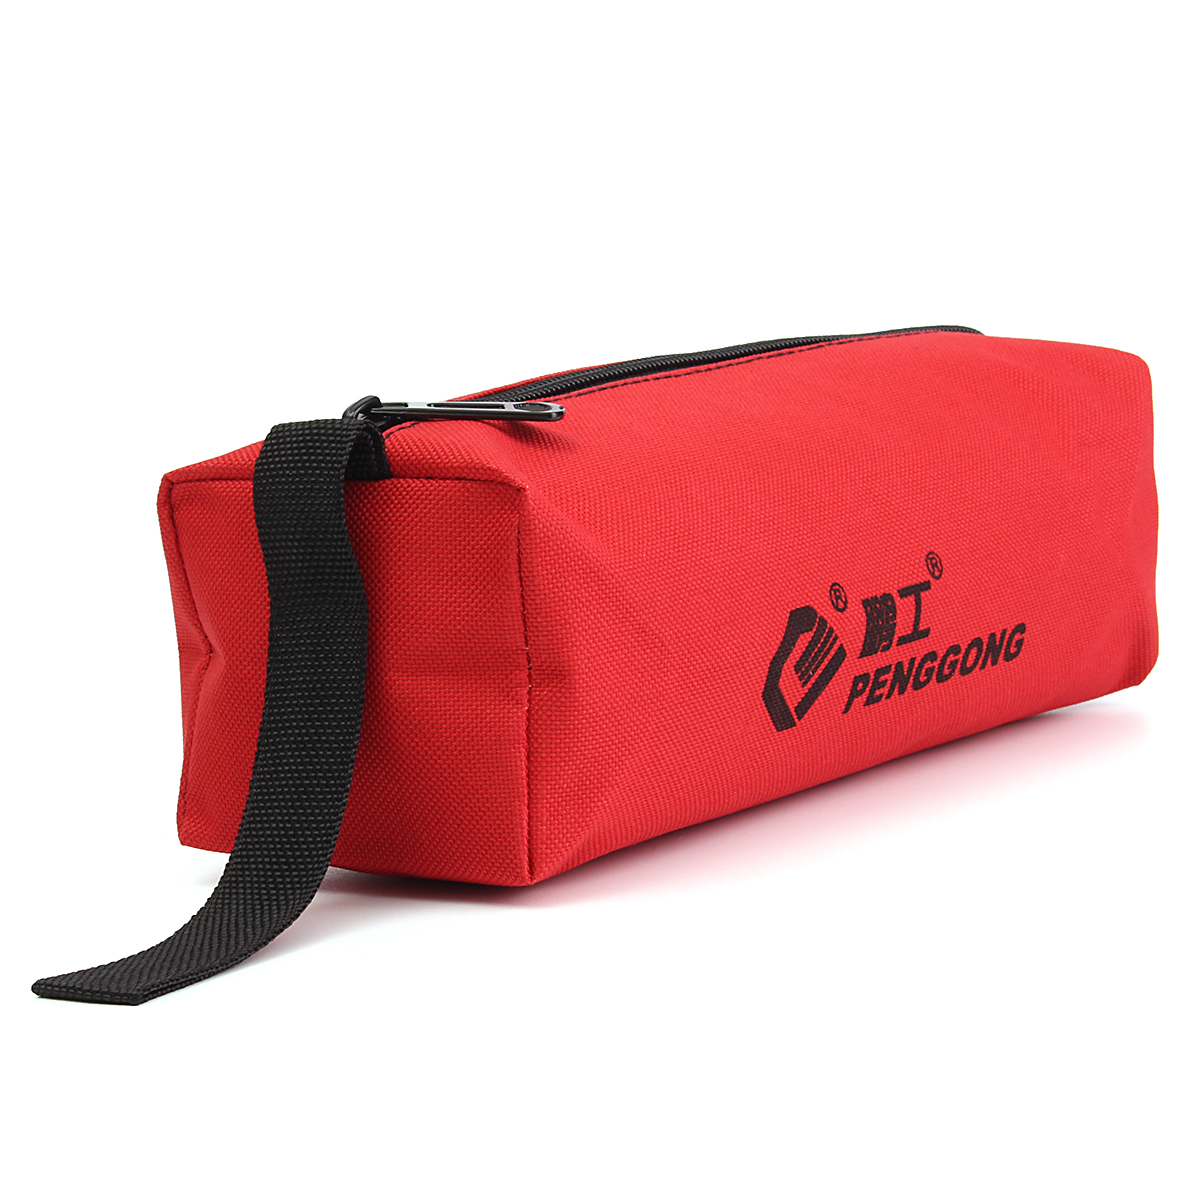 Multifunctional Storage Tools Bag Utility Bag Oxford Canvas for Small Metal Parts with Carrying Handles